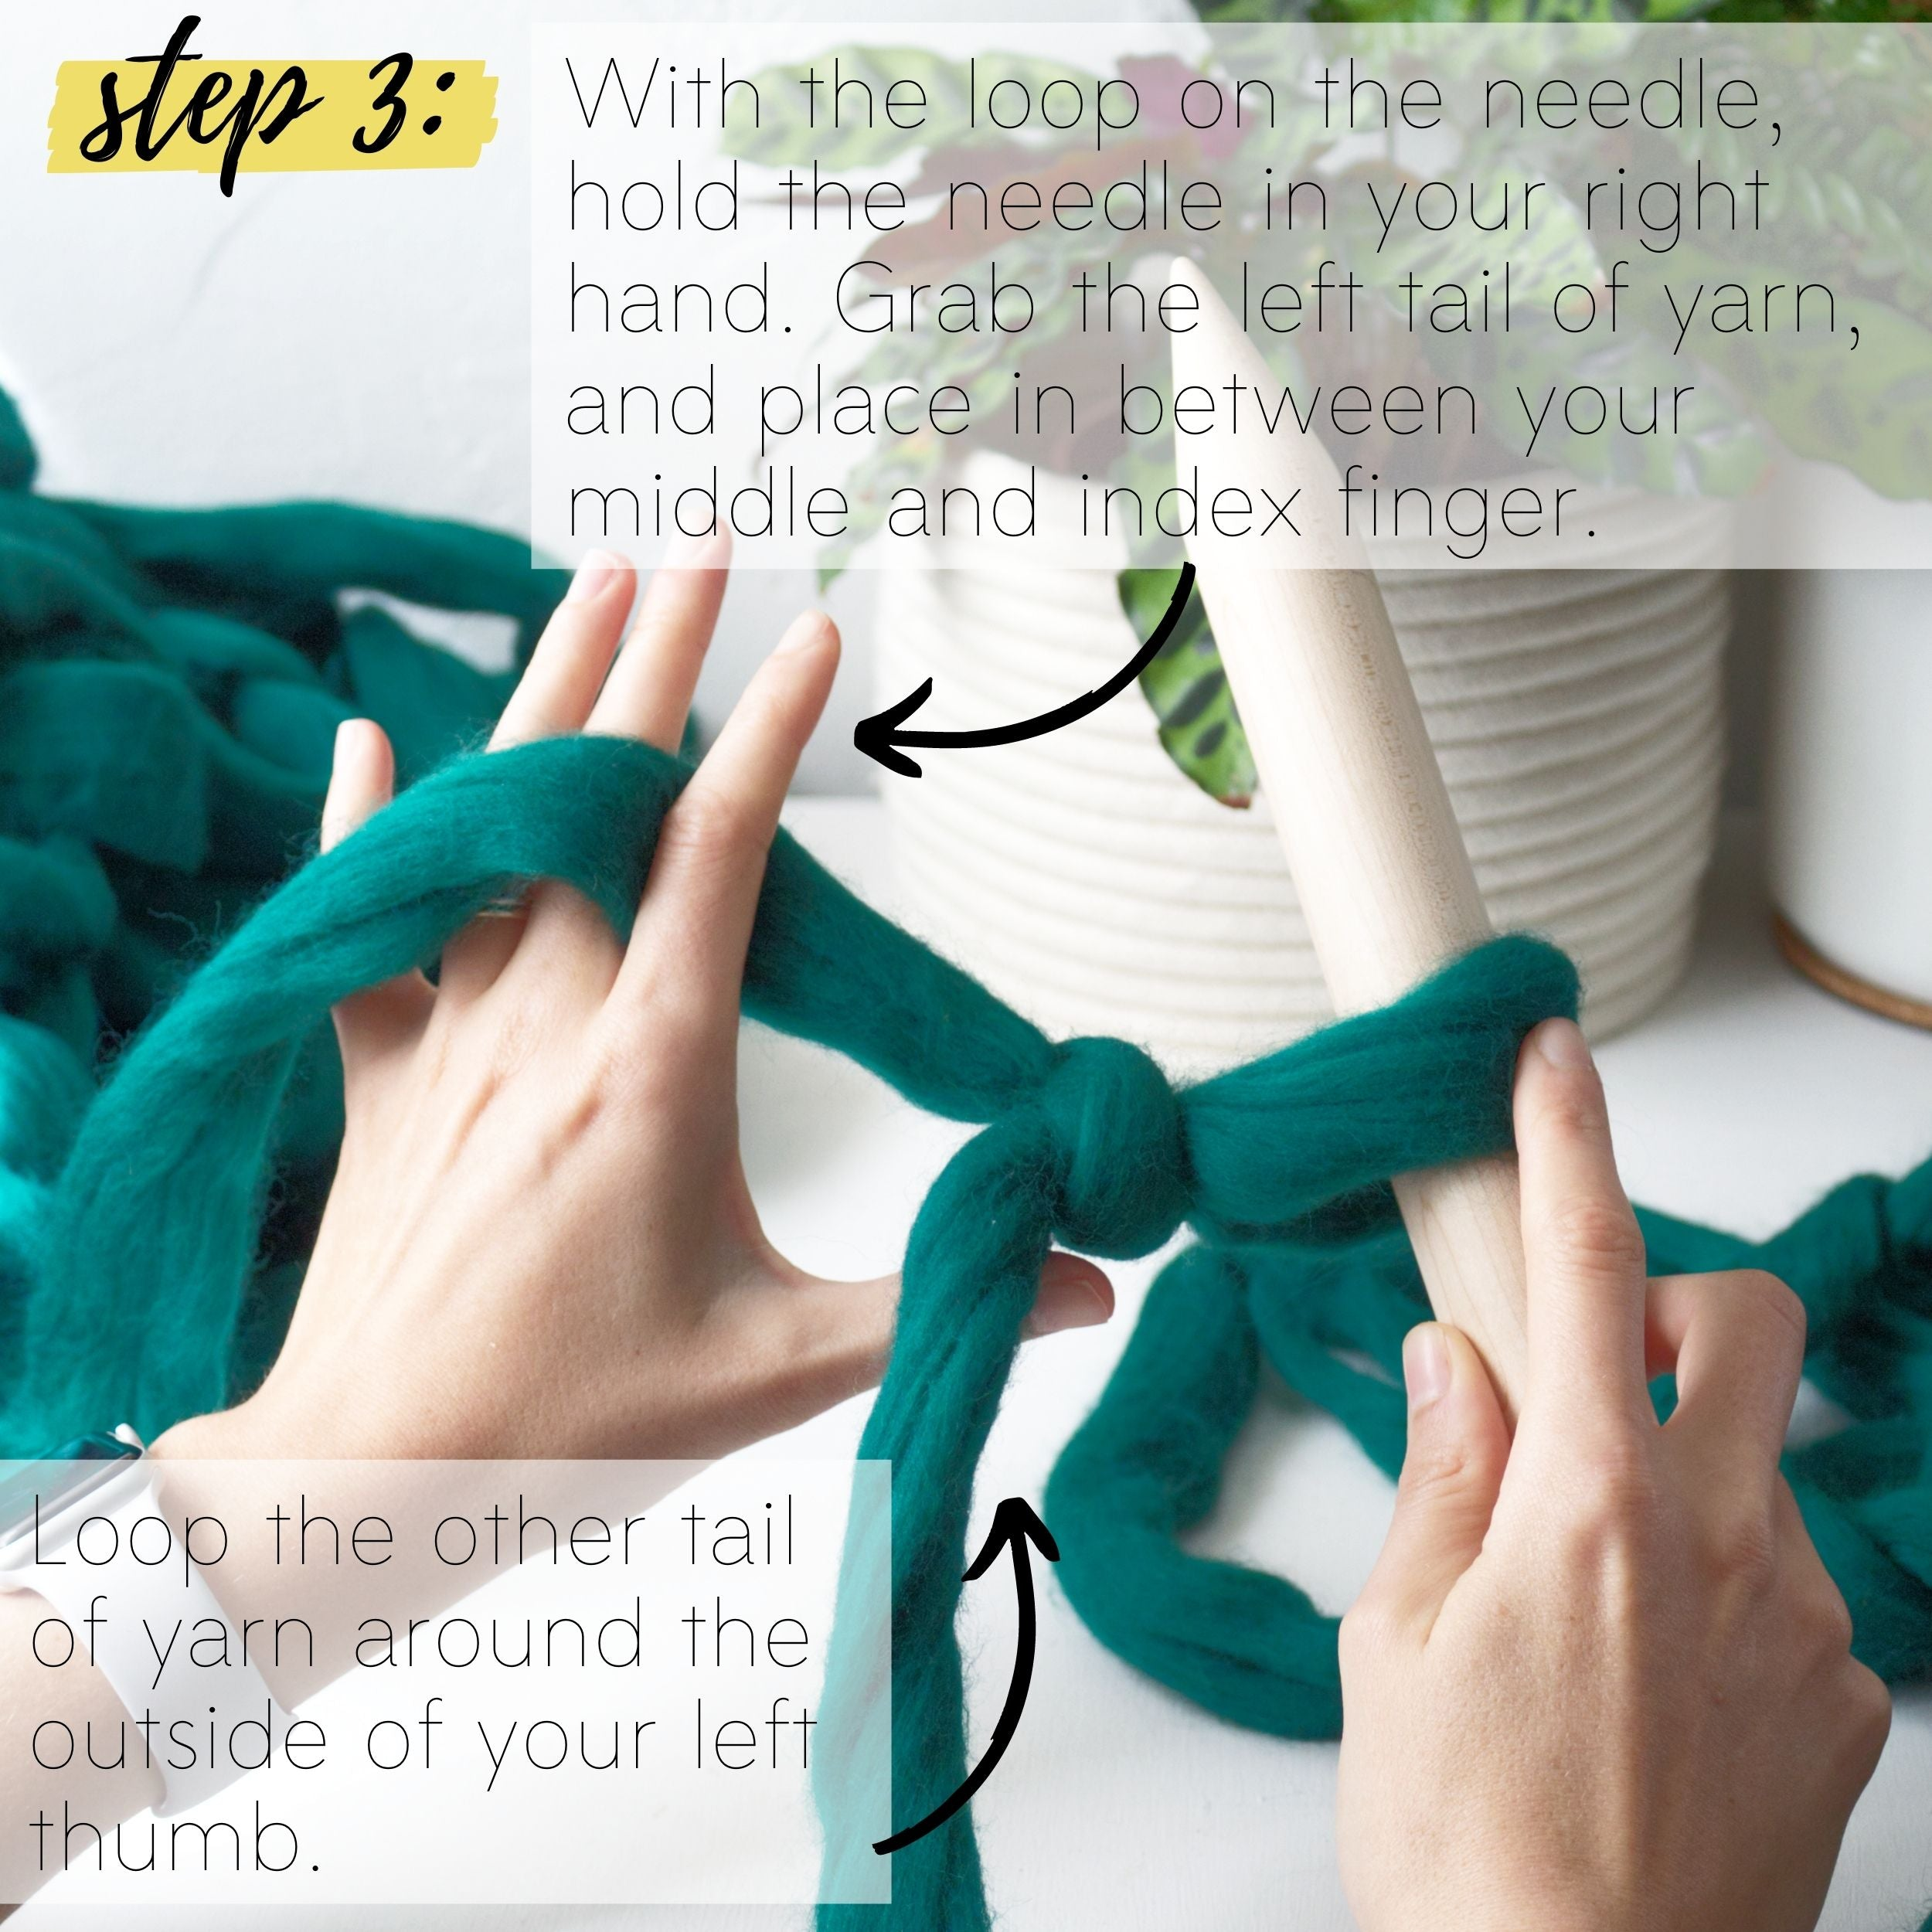 How to make a DIY chunky knit blanket, step 3